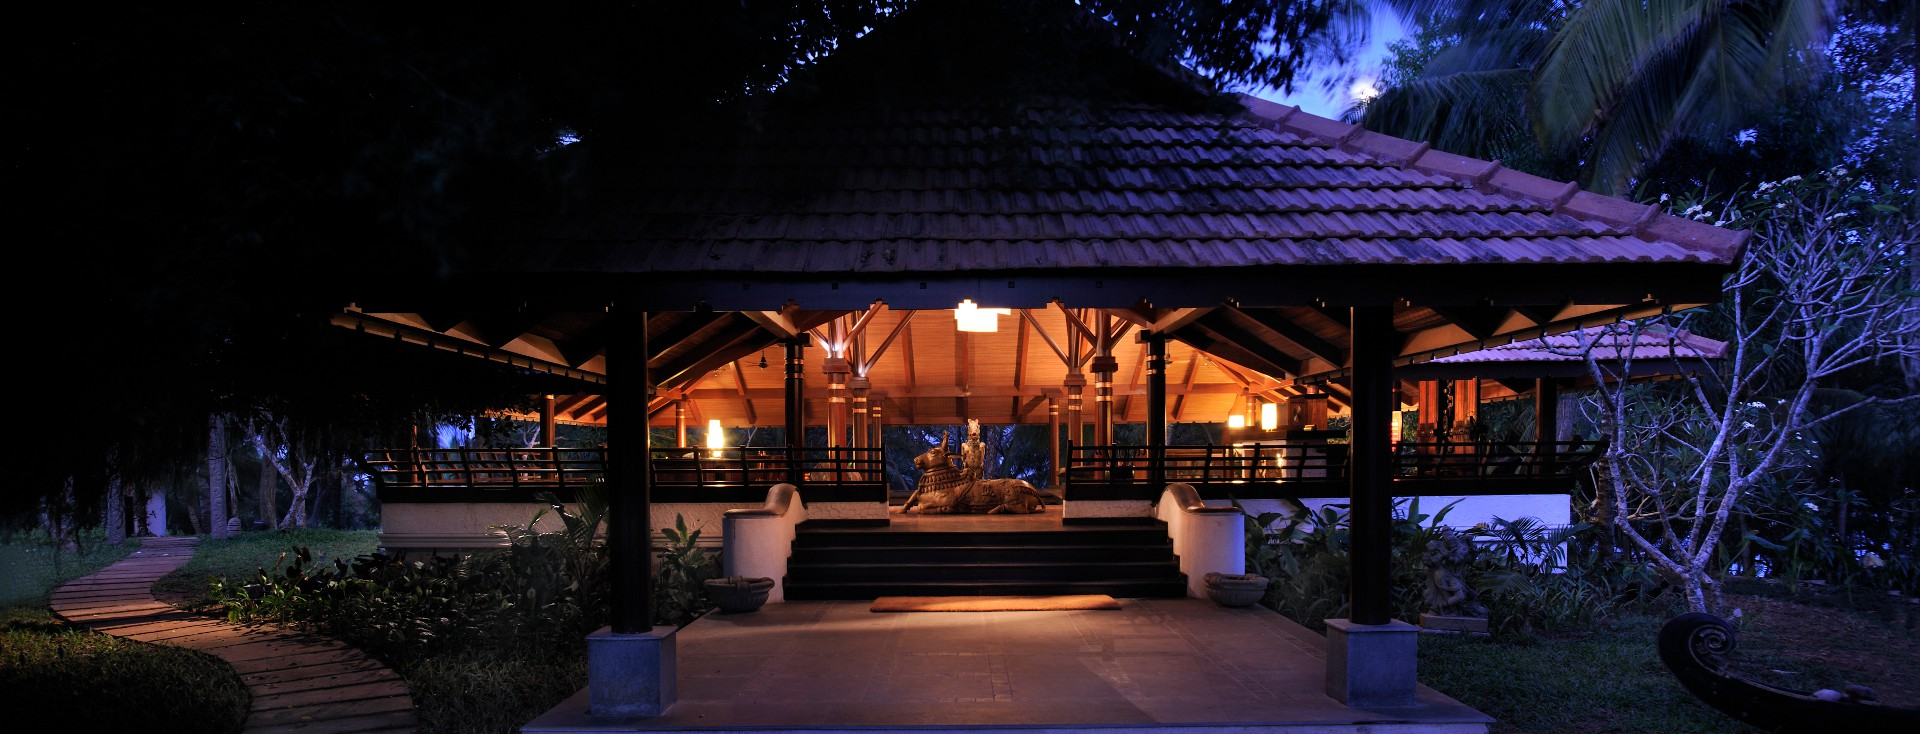 luxury-ayurveda-wellness-retreat